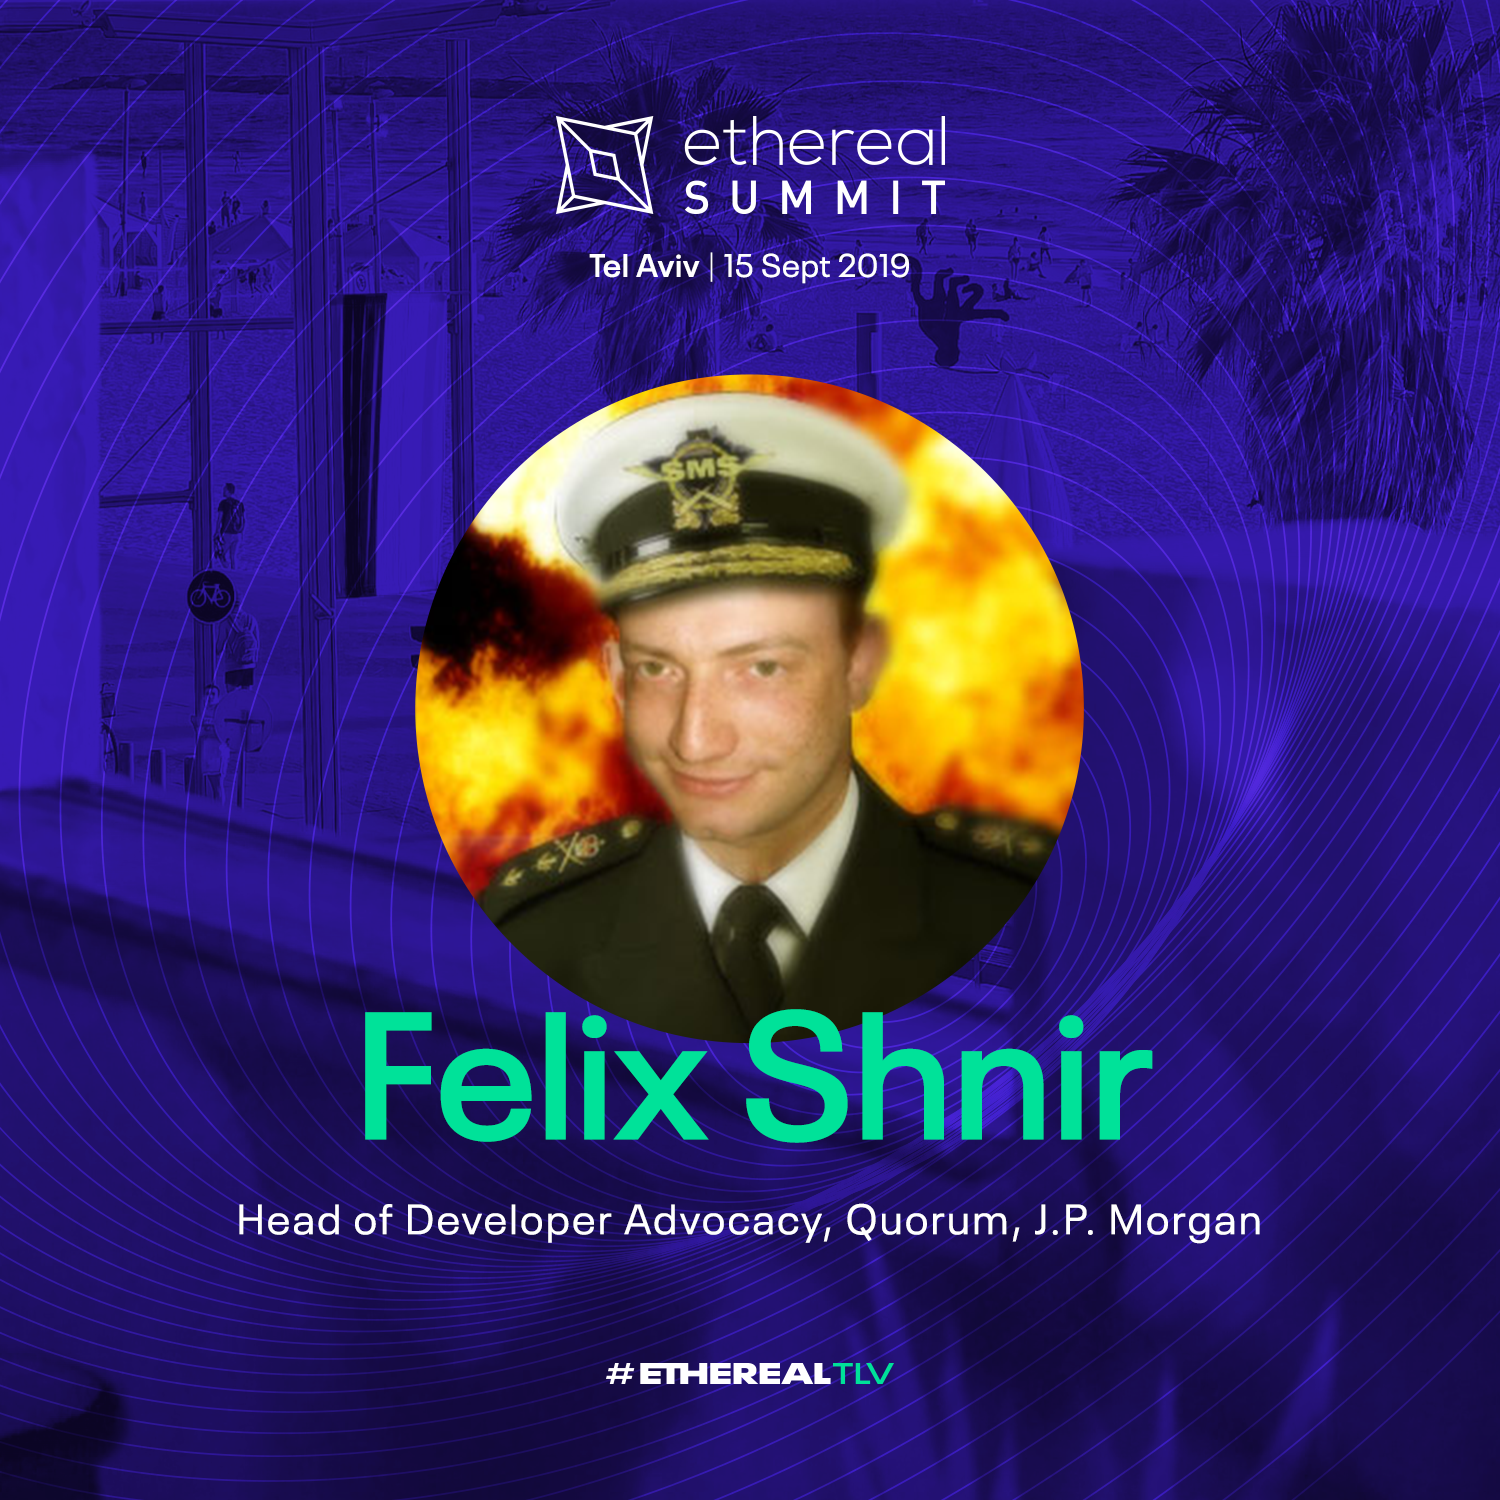 ethereal-tlv-2019-speaker-cards-square-felix-shnir.png